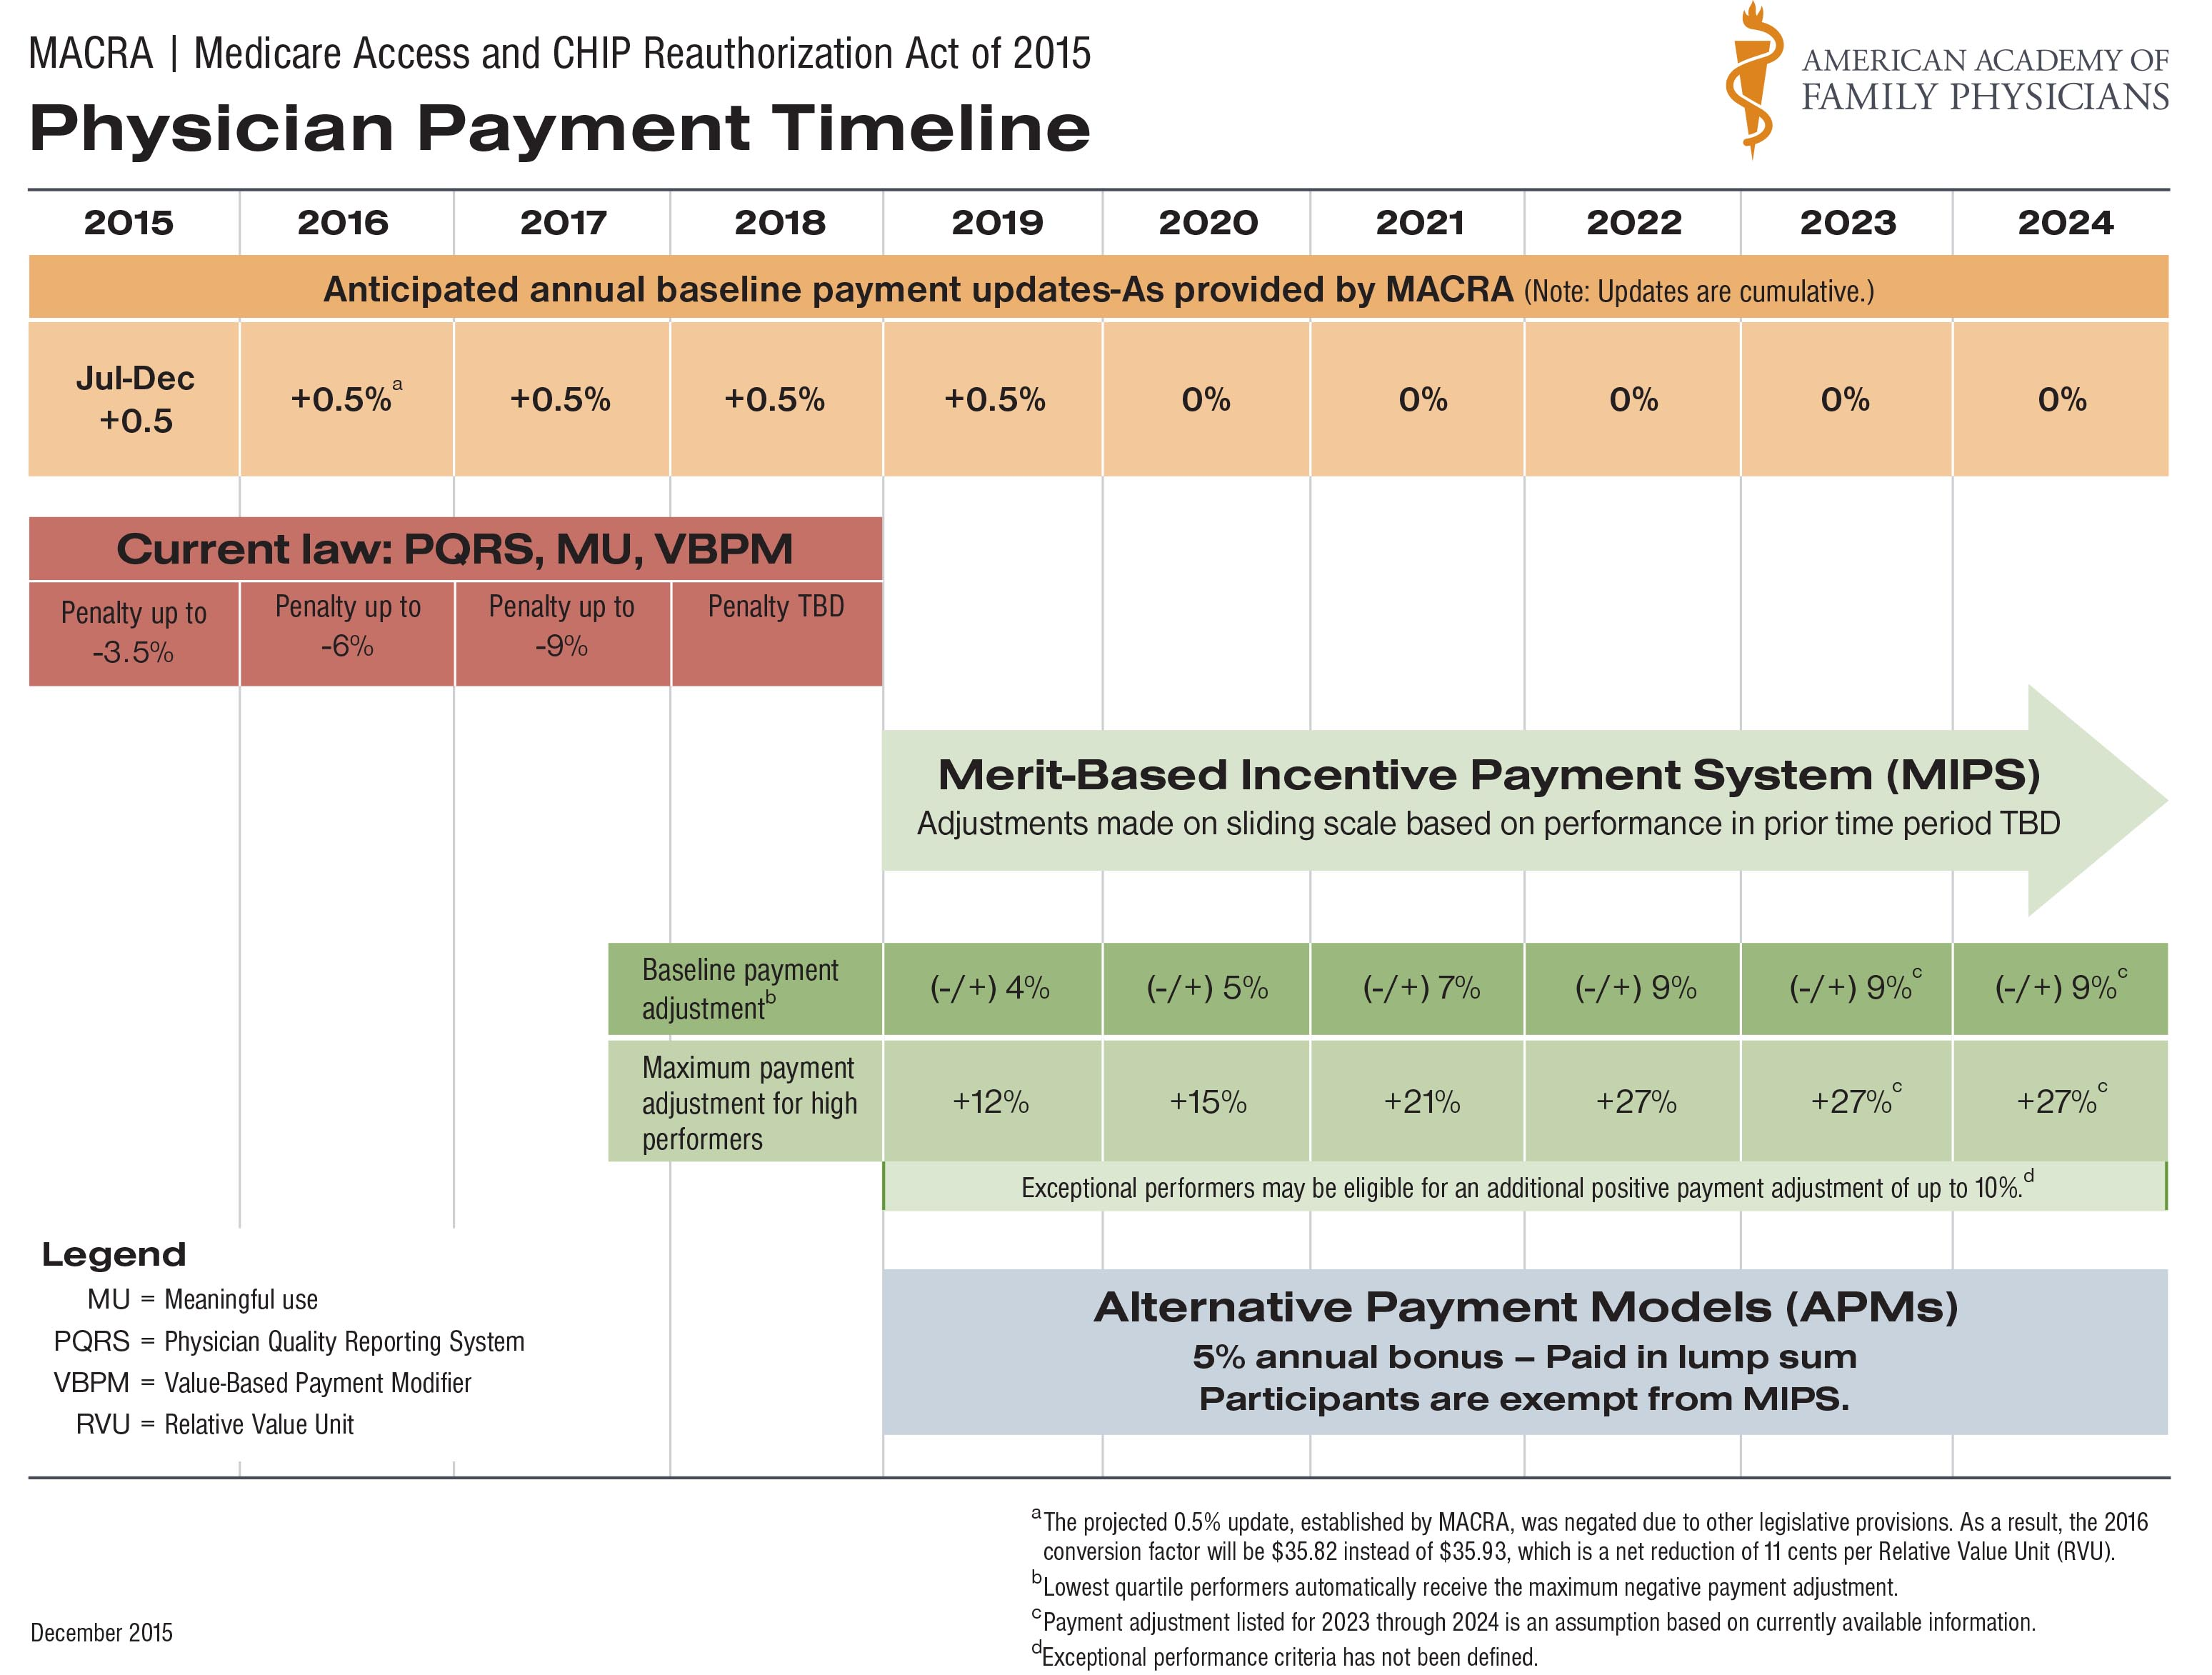 A timeline for physician payment related to MACRA.